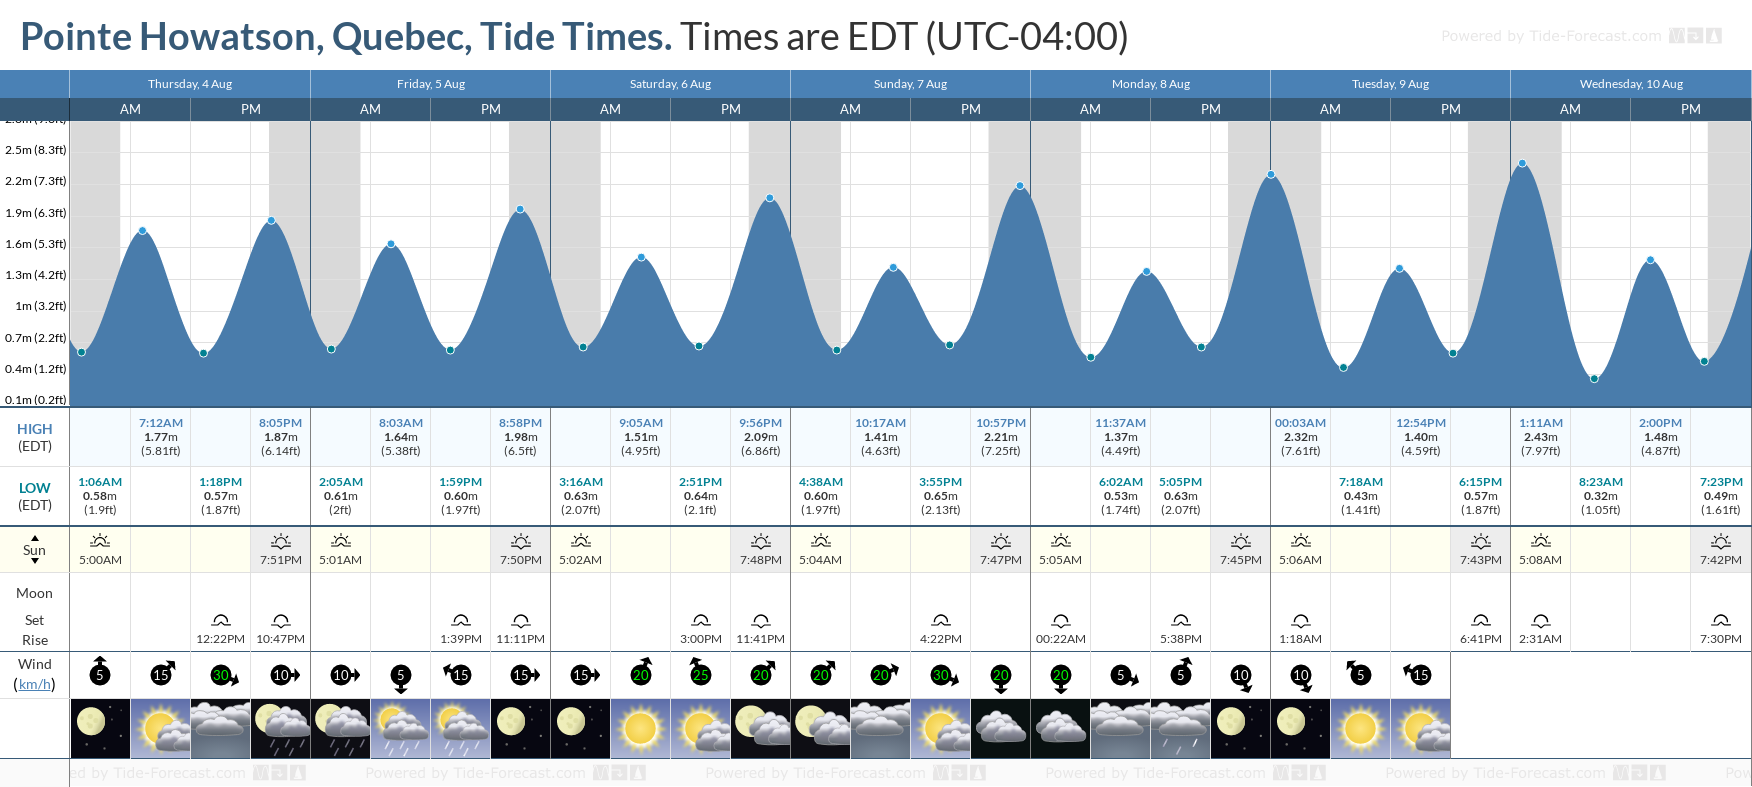 Pointe Howatson, Quebec Tide Chart including high and low tide tide times for the next 7 days